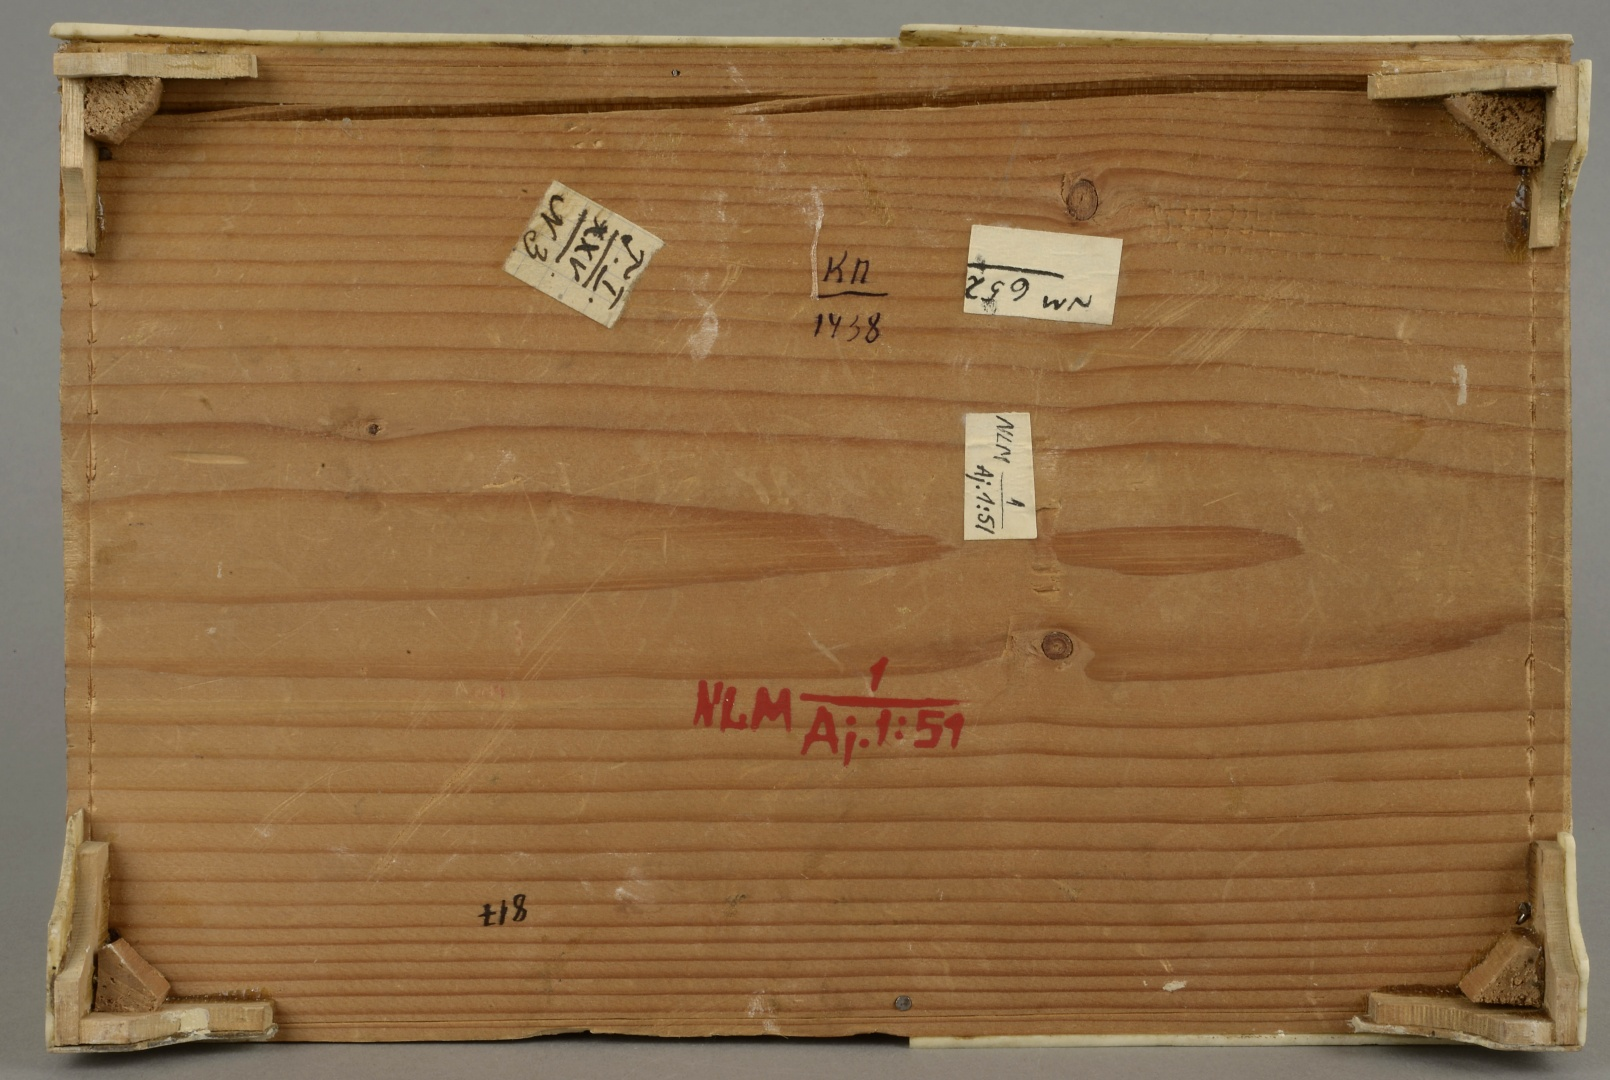 fig 8. Various markings made at different times on the bottom of the casket. The legs of the casket were plain wooden slats forming a triangle that was supported by small wooden blocks